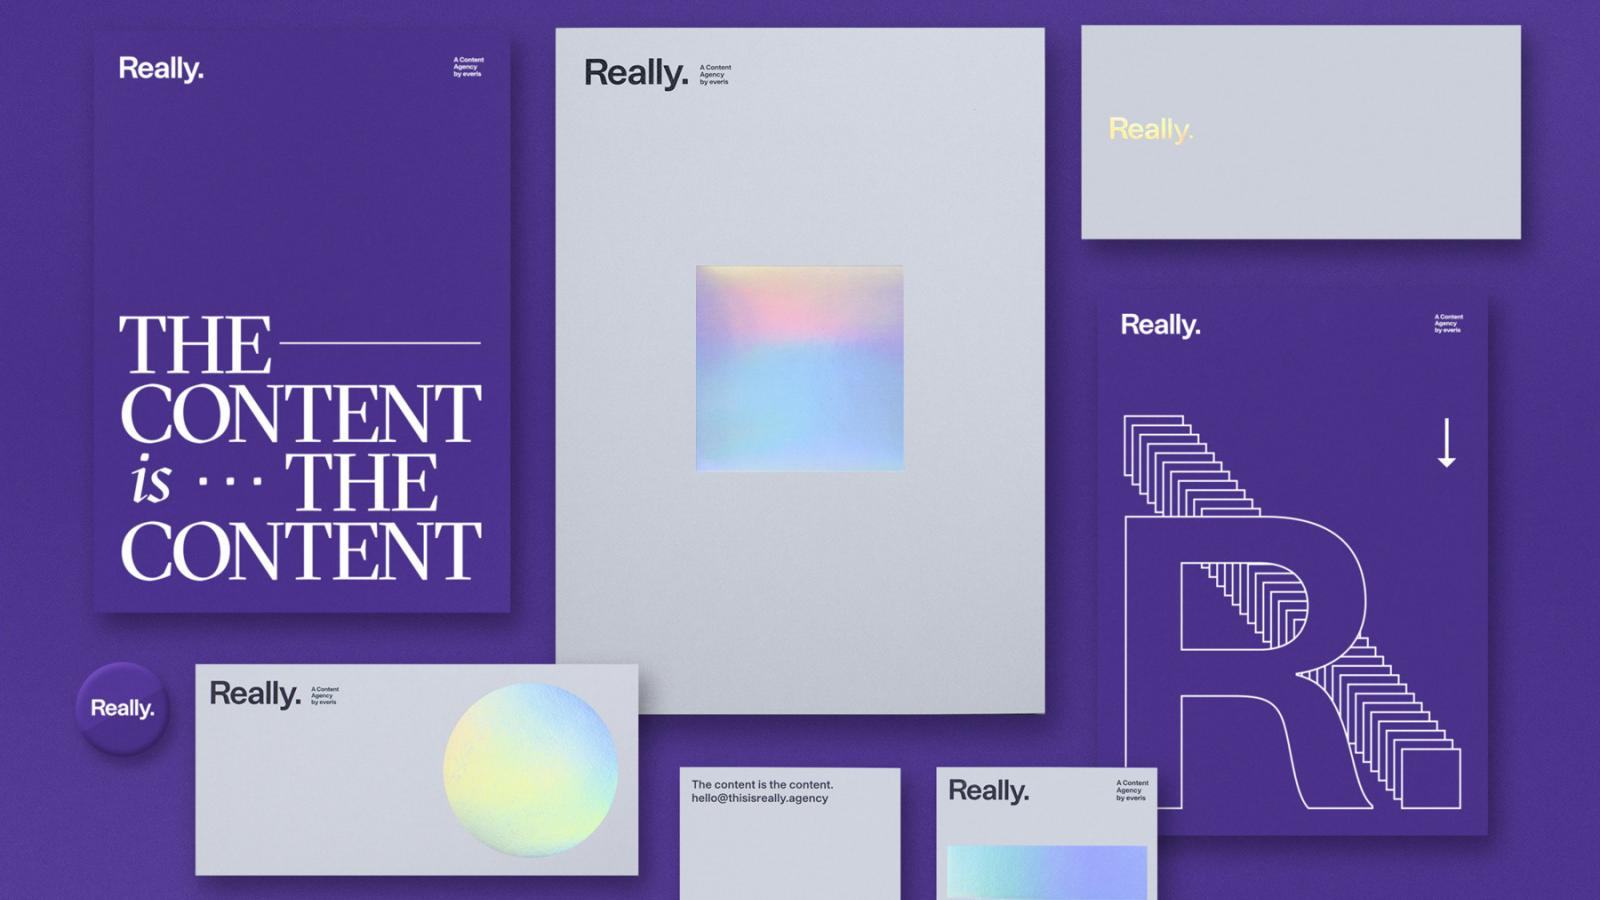 Brand Identity for Really. by Tata&Friends Studio